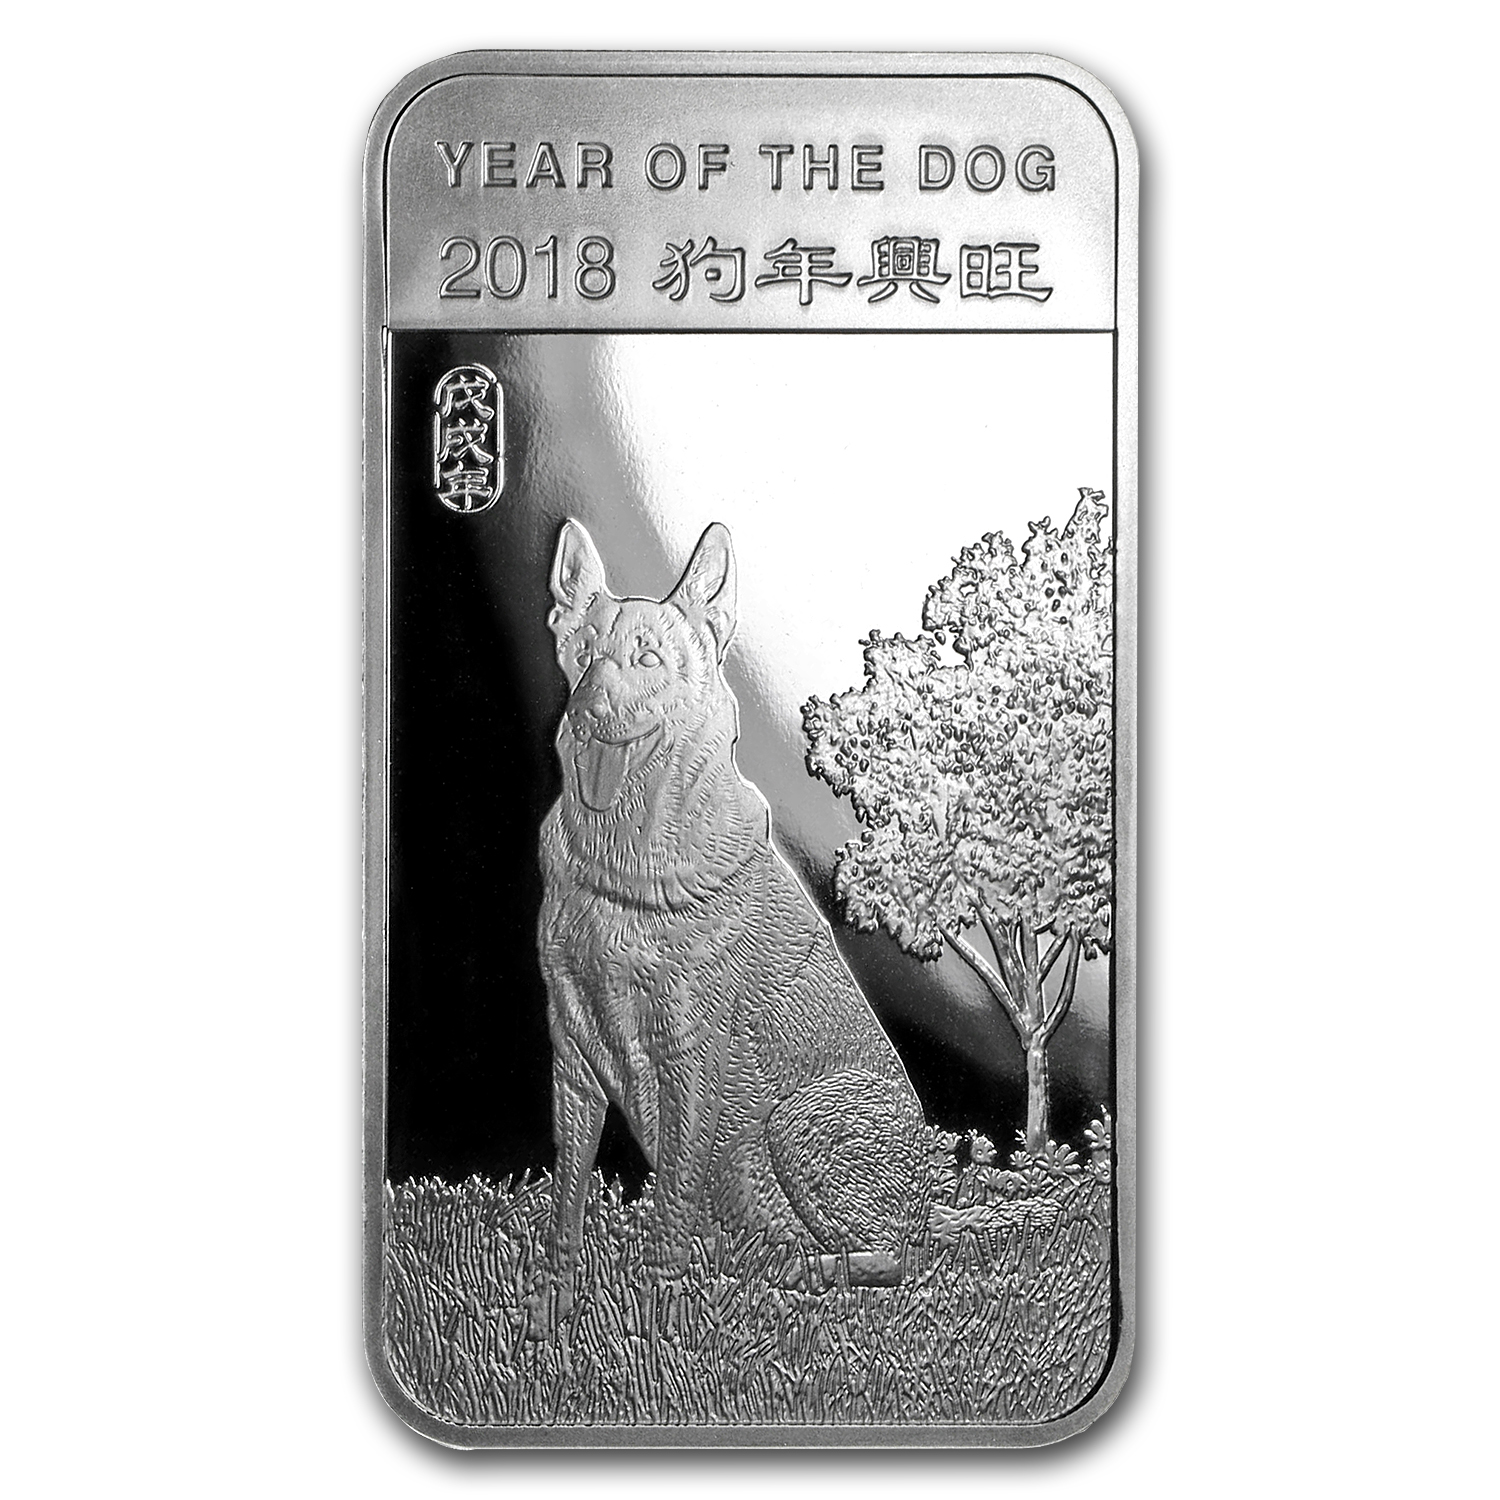 5 oz Silver Bar - APMEX (2018 Year of the Dog)